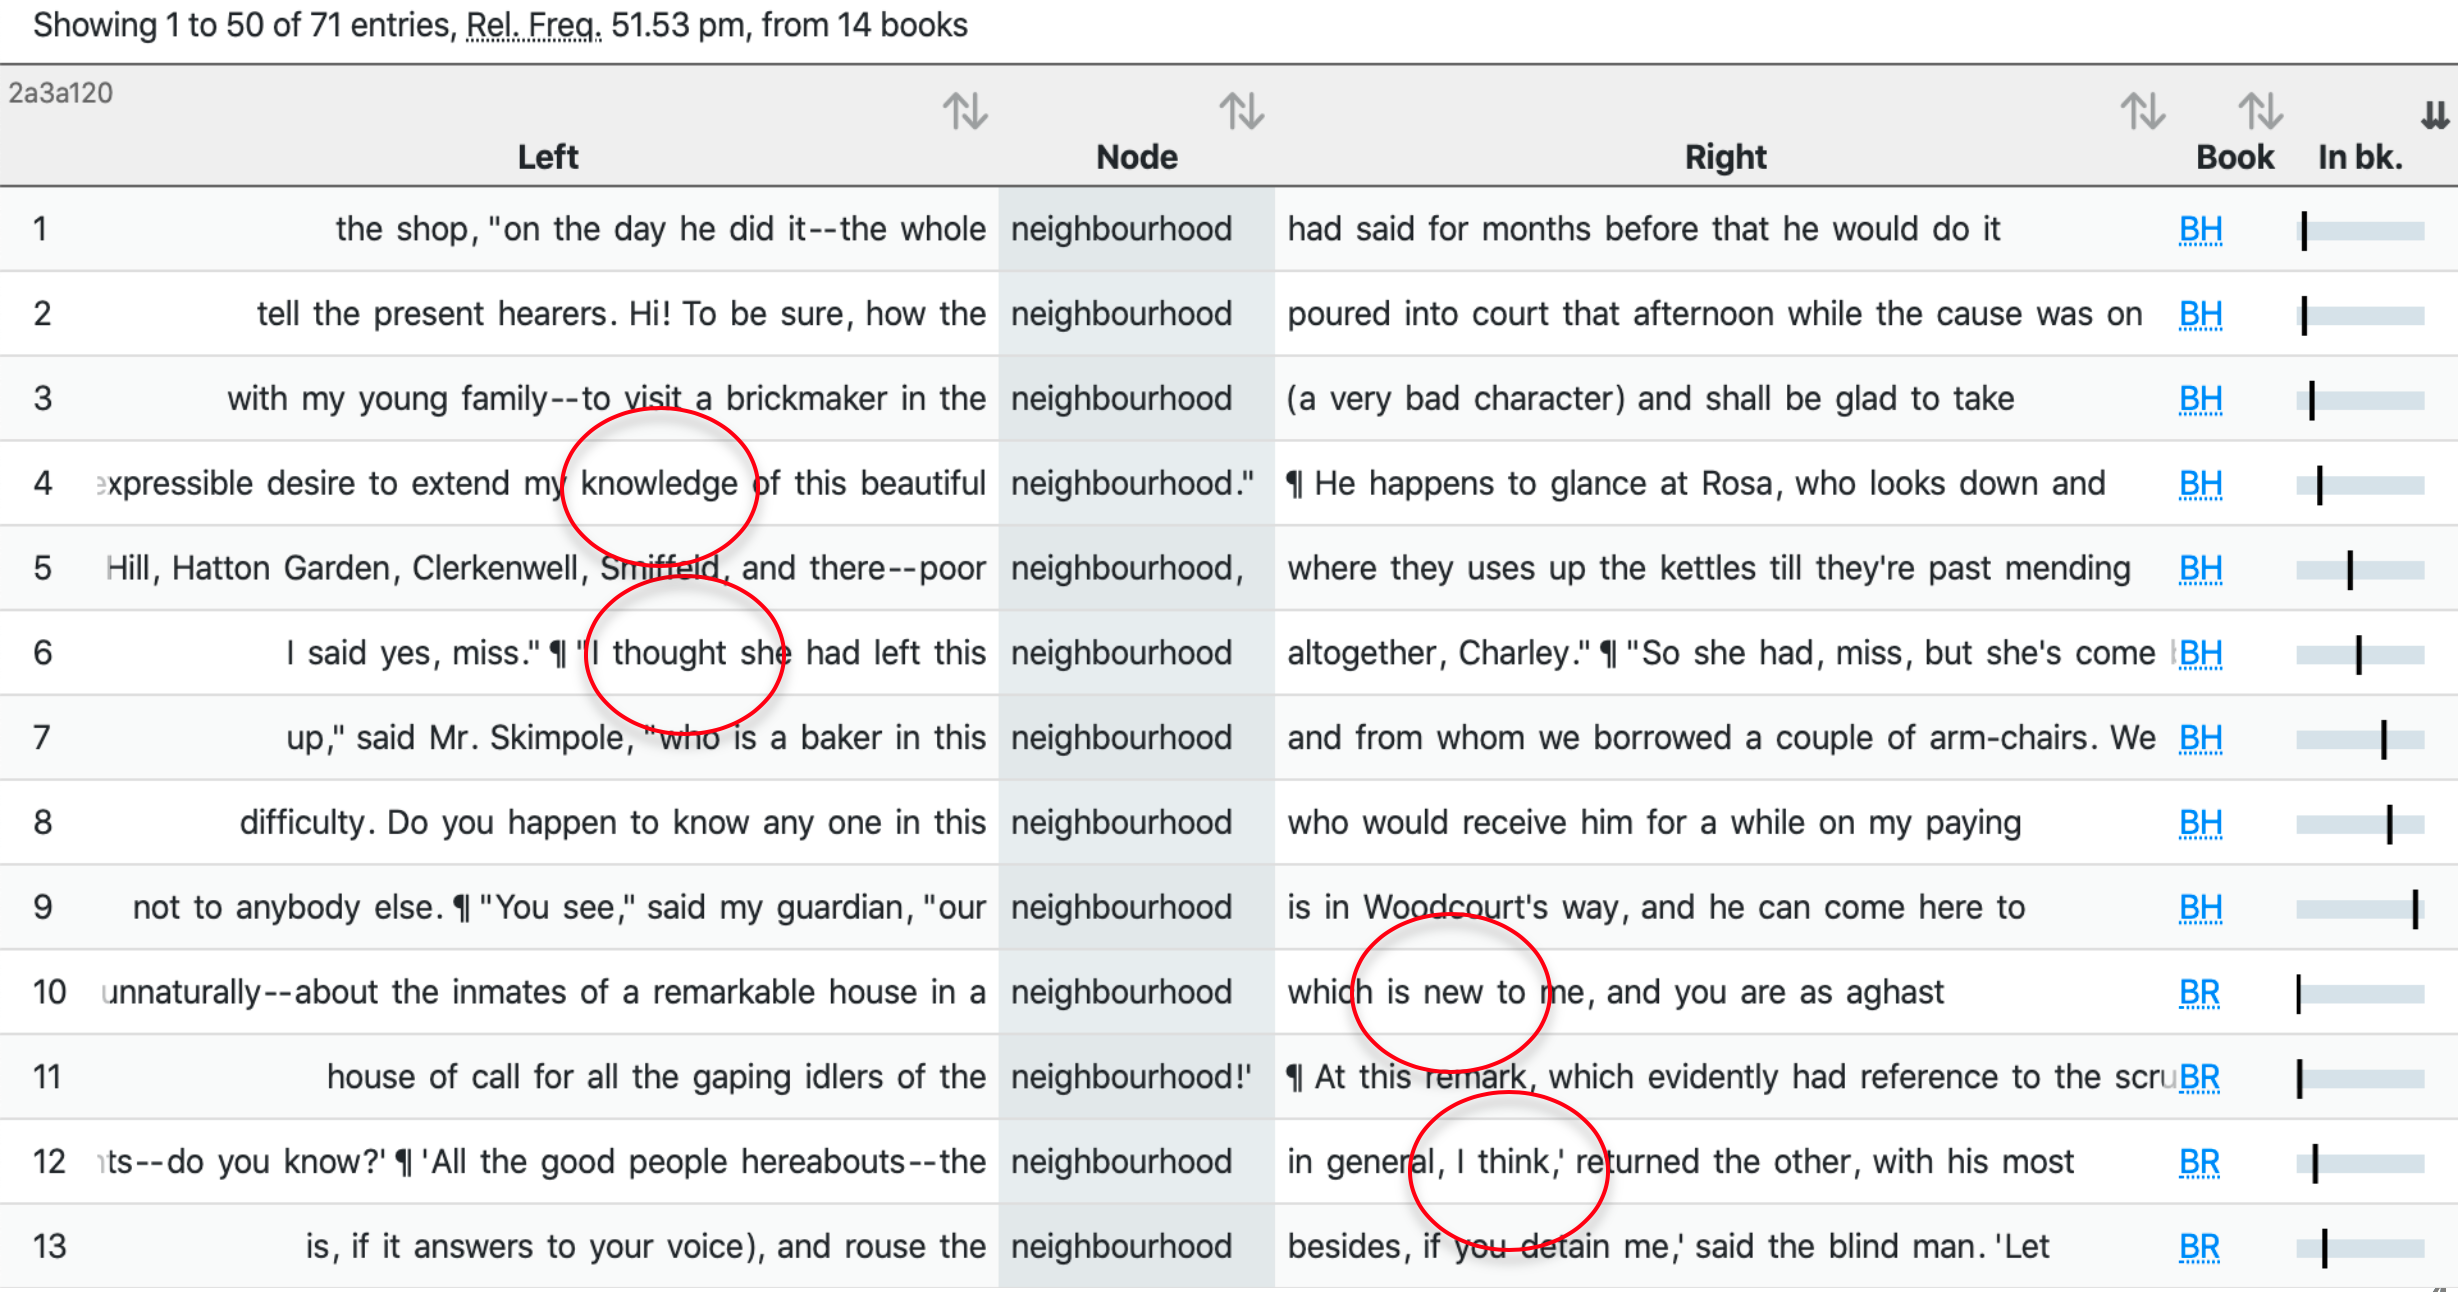 Sample of concordance lines for neighbourhood in the quotes subset of Dickens's Novels